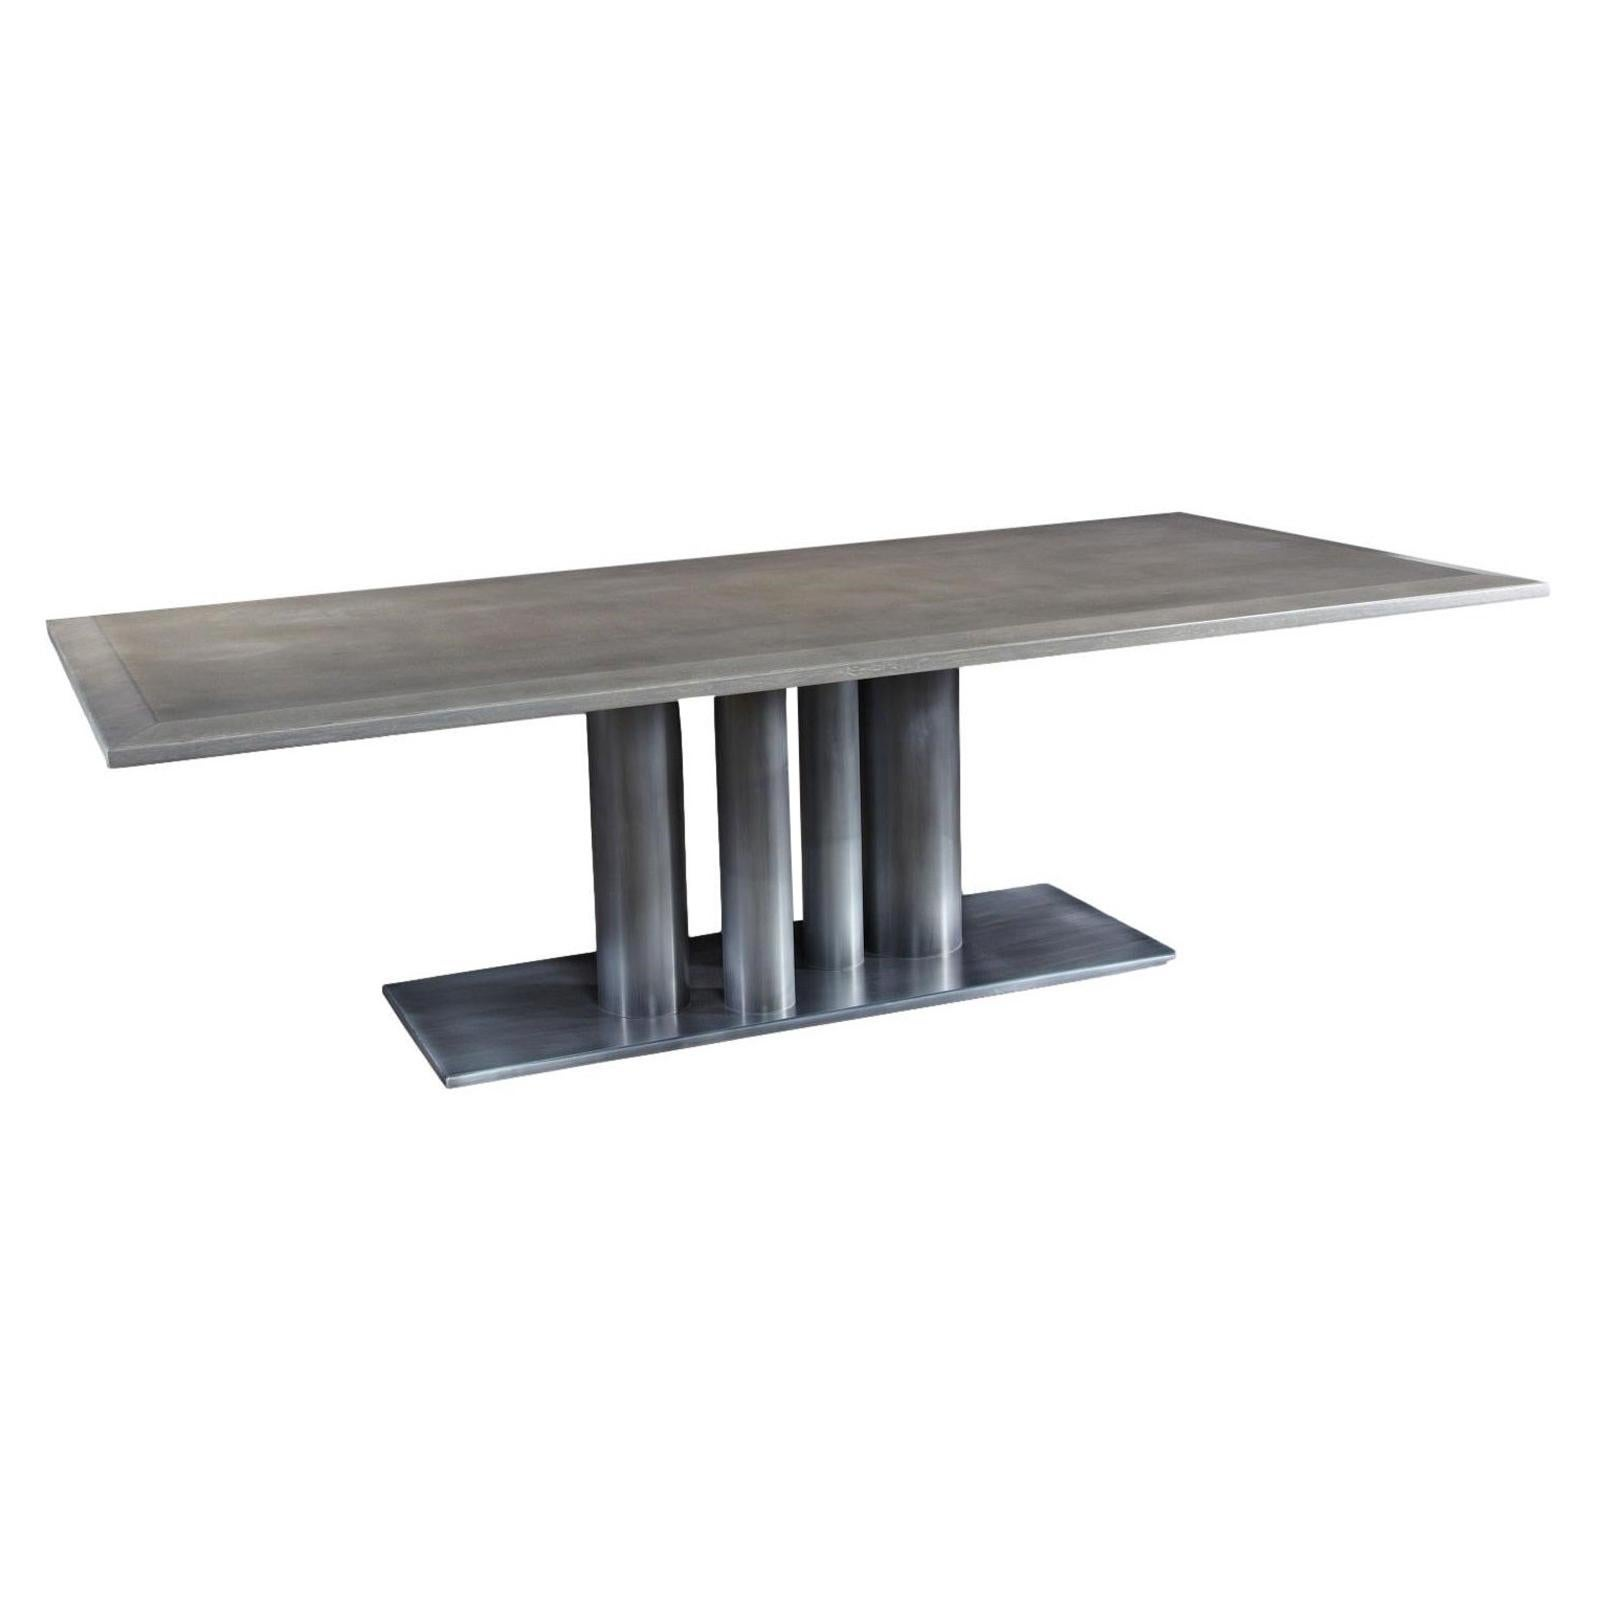 Contemporary Rectangular Dining Table in Warm White Oak